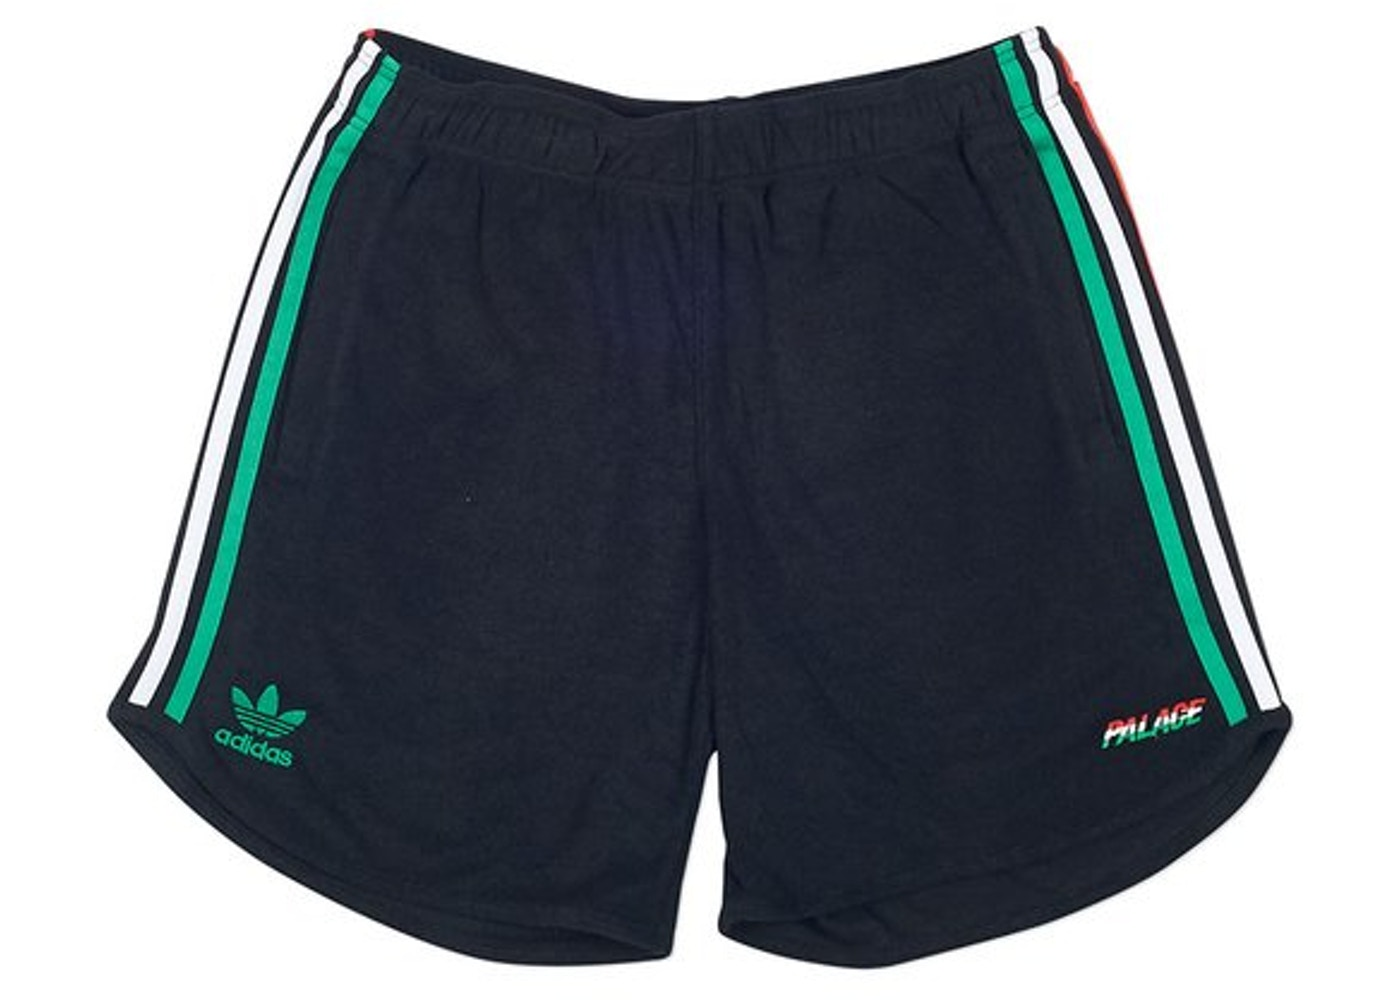 7407ea682b Palace adidas Terry Shorts Black. adidas Terry